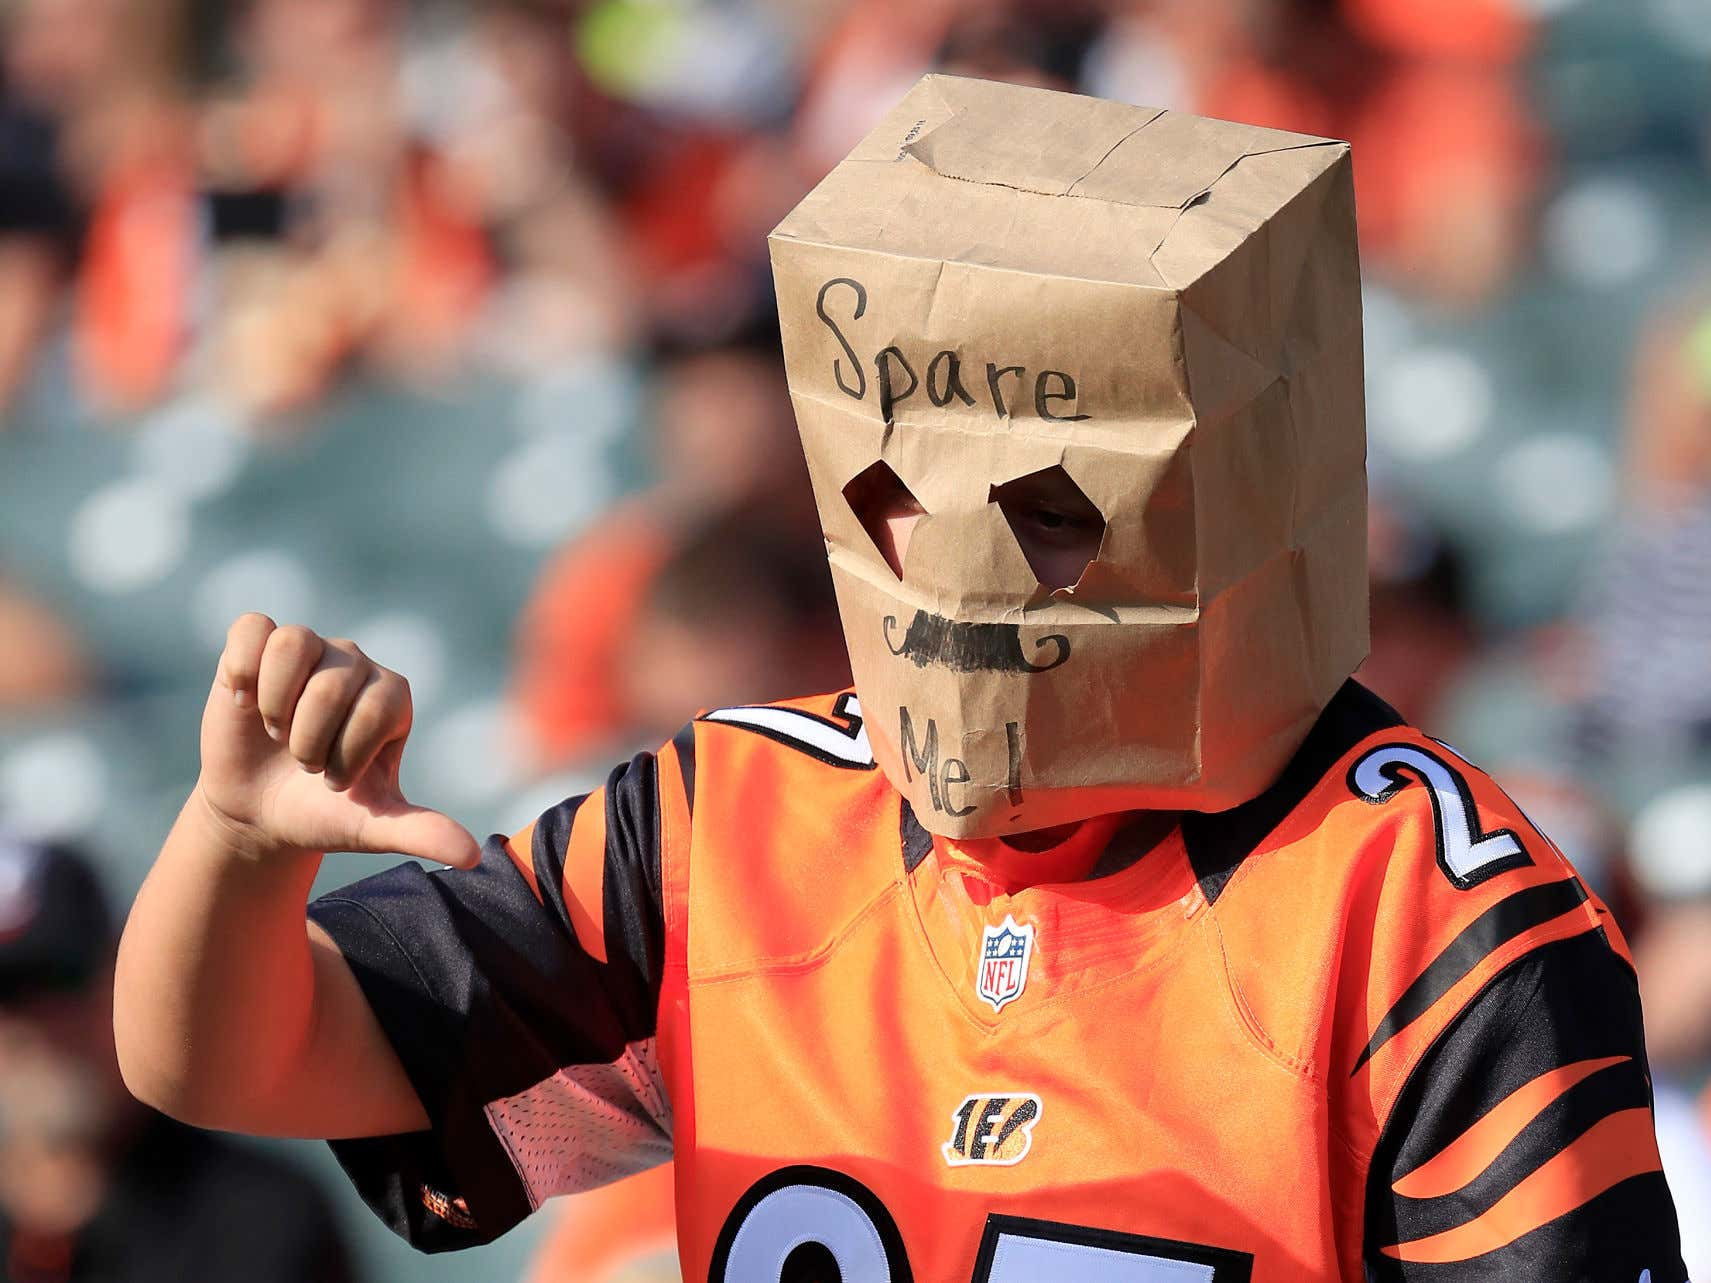 Oh, Look At That! One Instagram Post Shows The Bengals Still Are - And Always Will Be - The Most Dysfunctional Franchise In The NFL